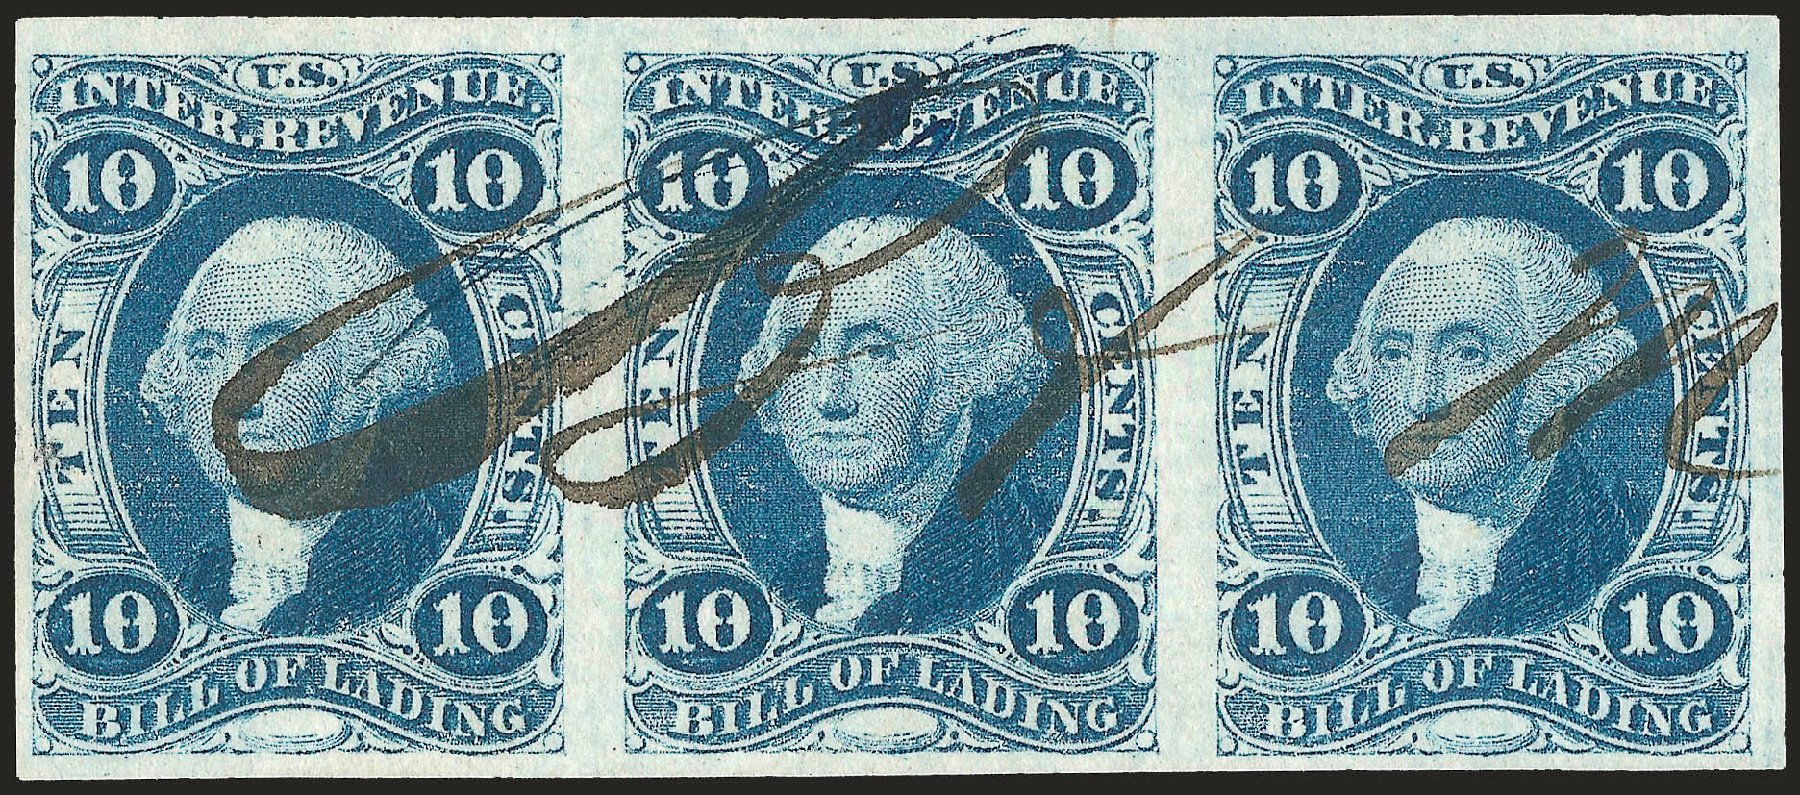 Value of US Stamp Scott Cat. #R32 - 10c 1862 Revenue Bill of Lading. Robert Siegel Auction Galleries, Dec 2008, Sale 967, Lot 5223